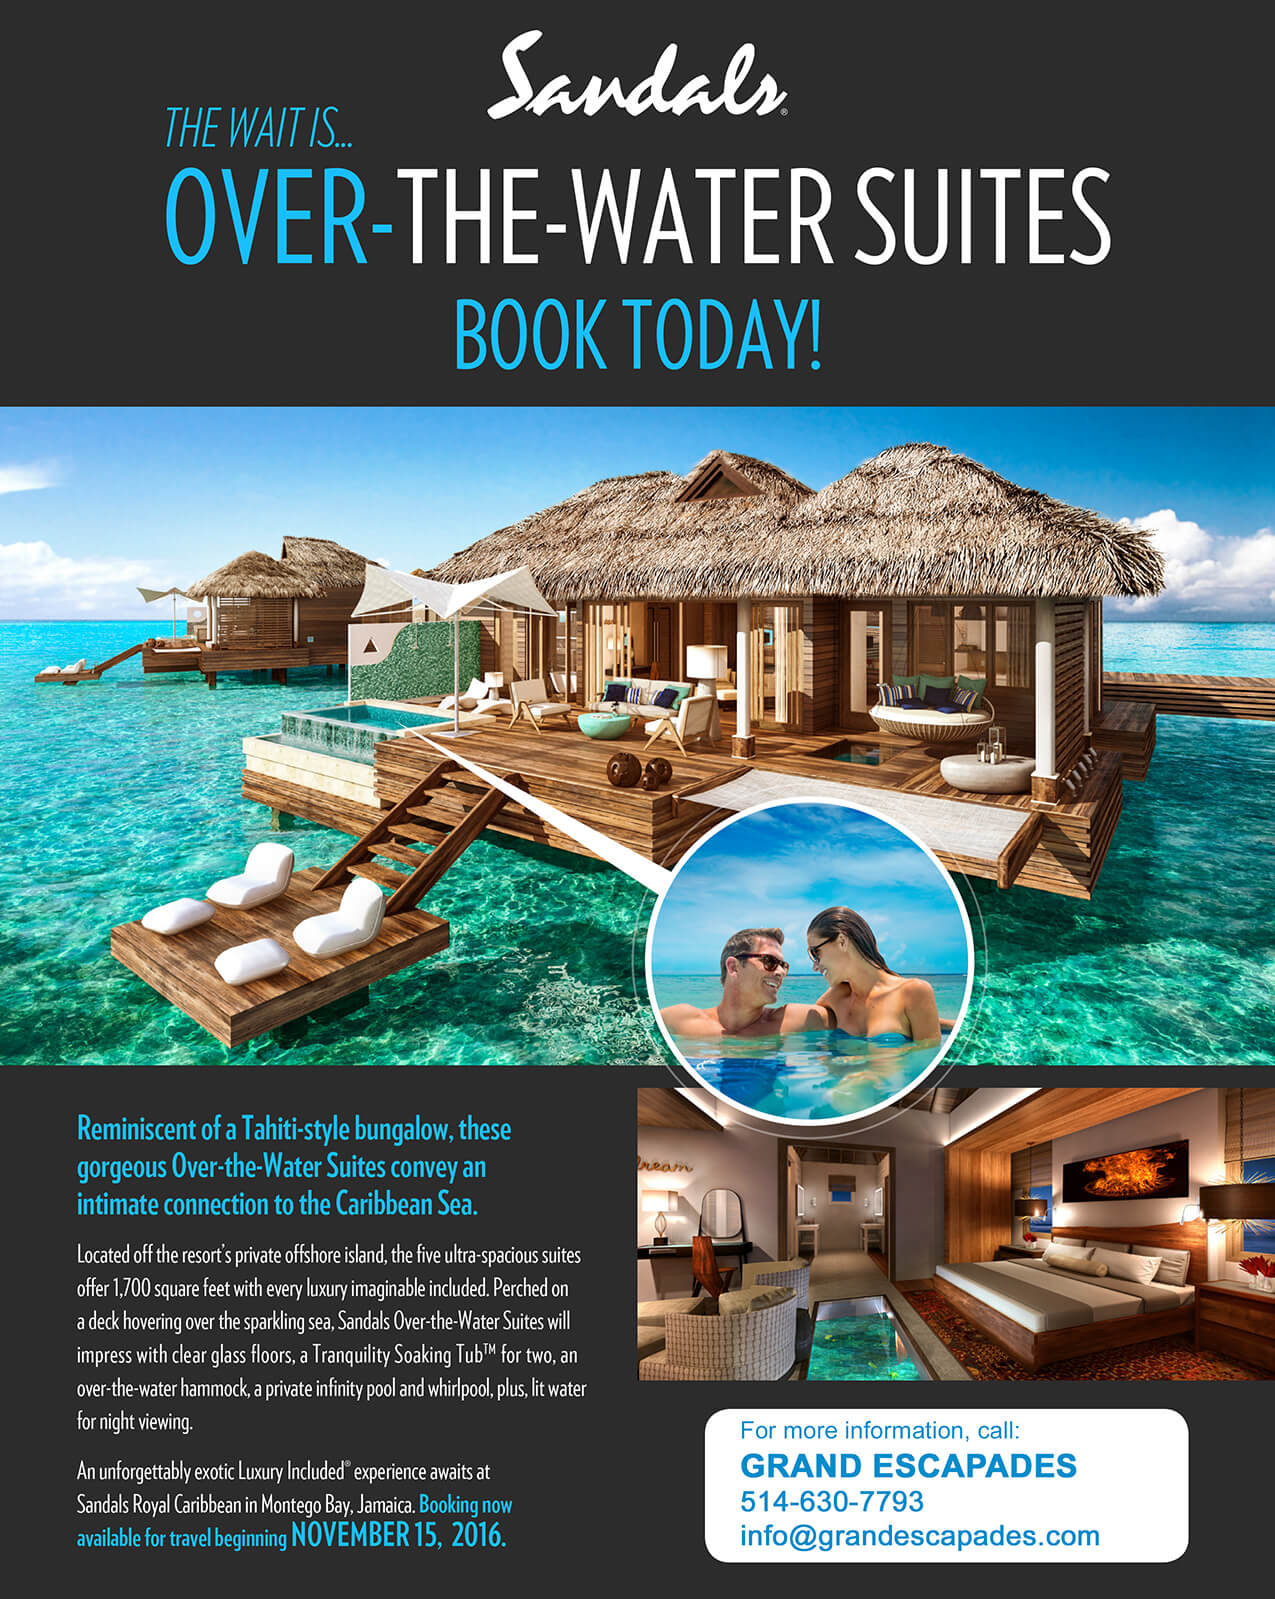 Sandals over-the-water suites flyer